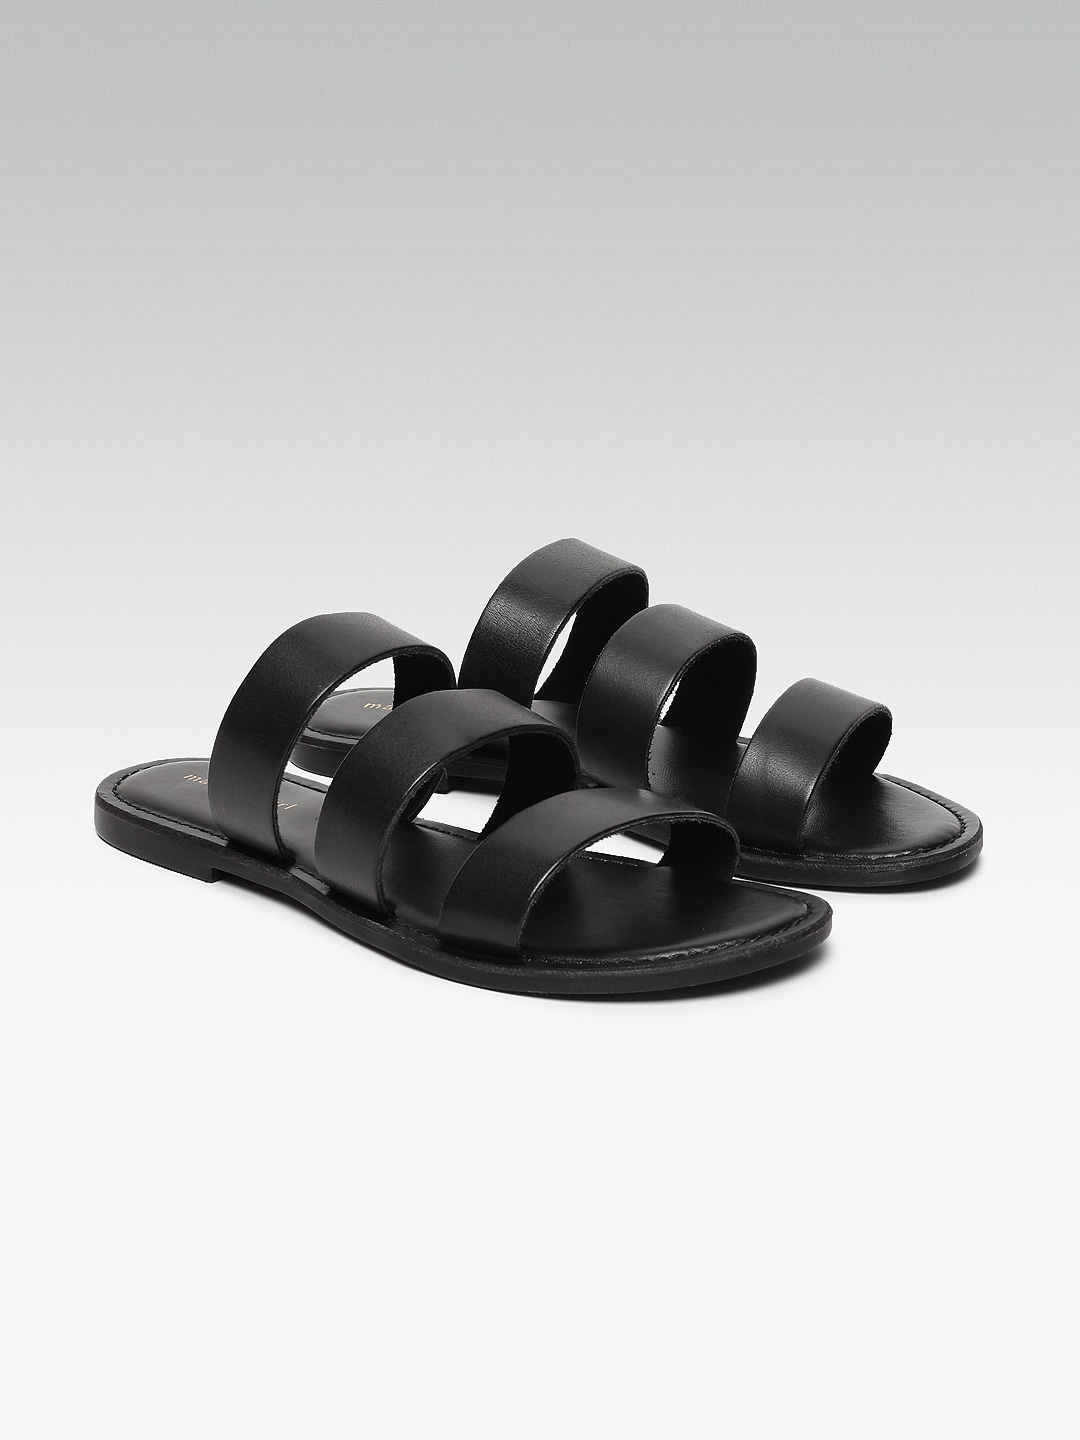 33ae6490d3c Steve Madden - Buy Steve Madden Products Online In India